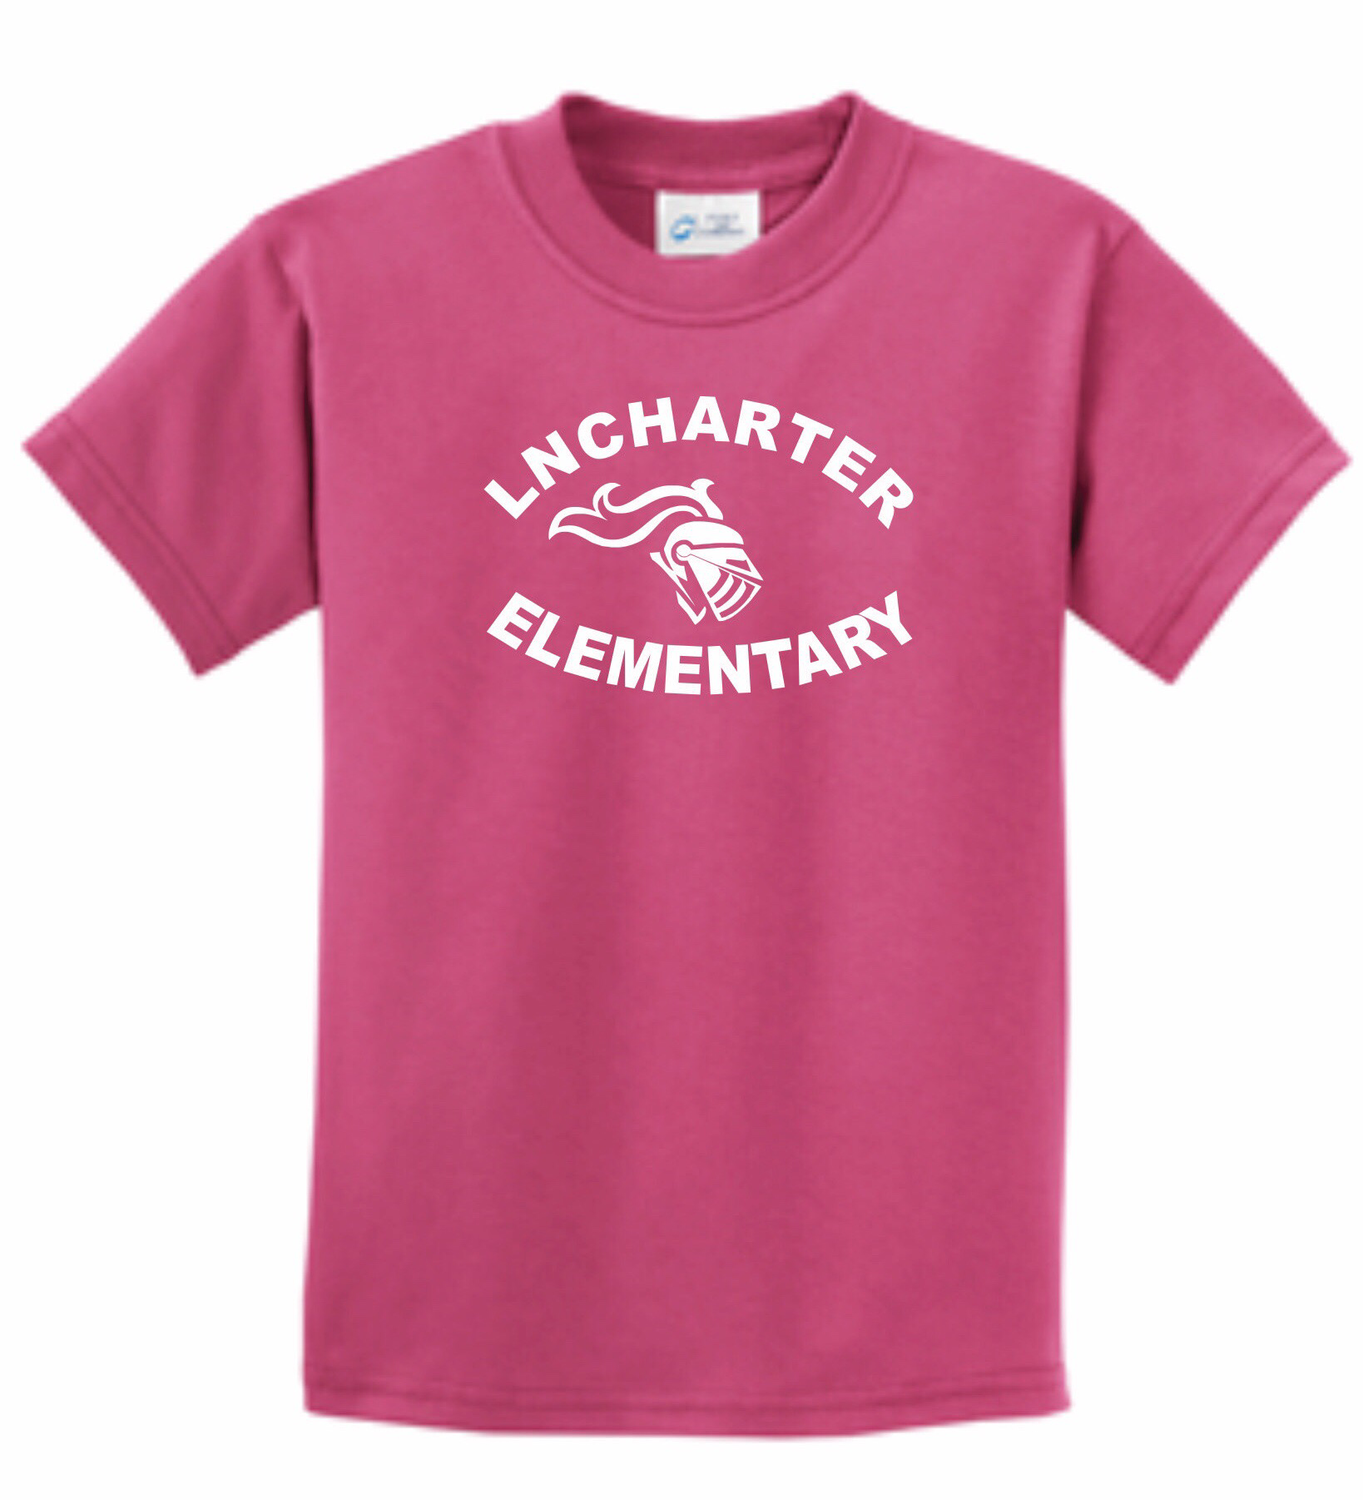 Youth LNCHARTER ELEM T-shirt-NEW in pink!